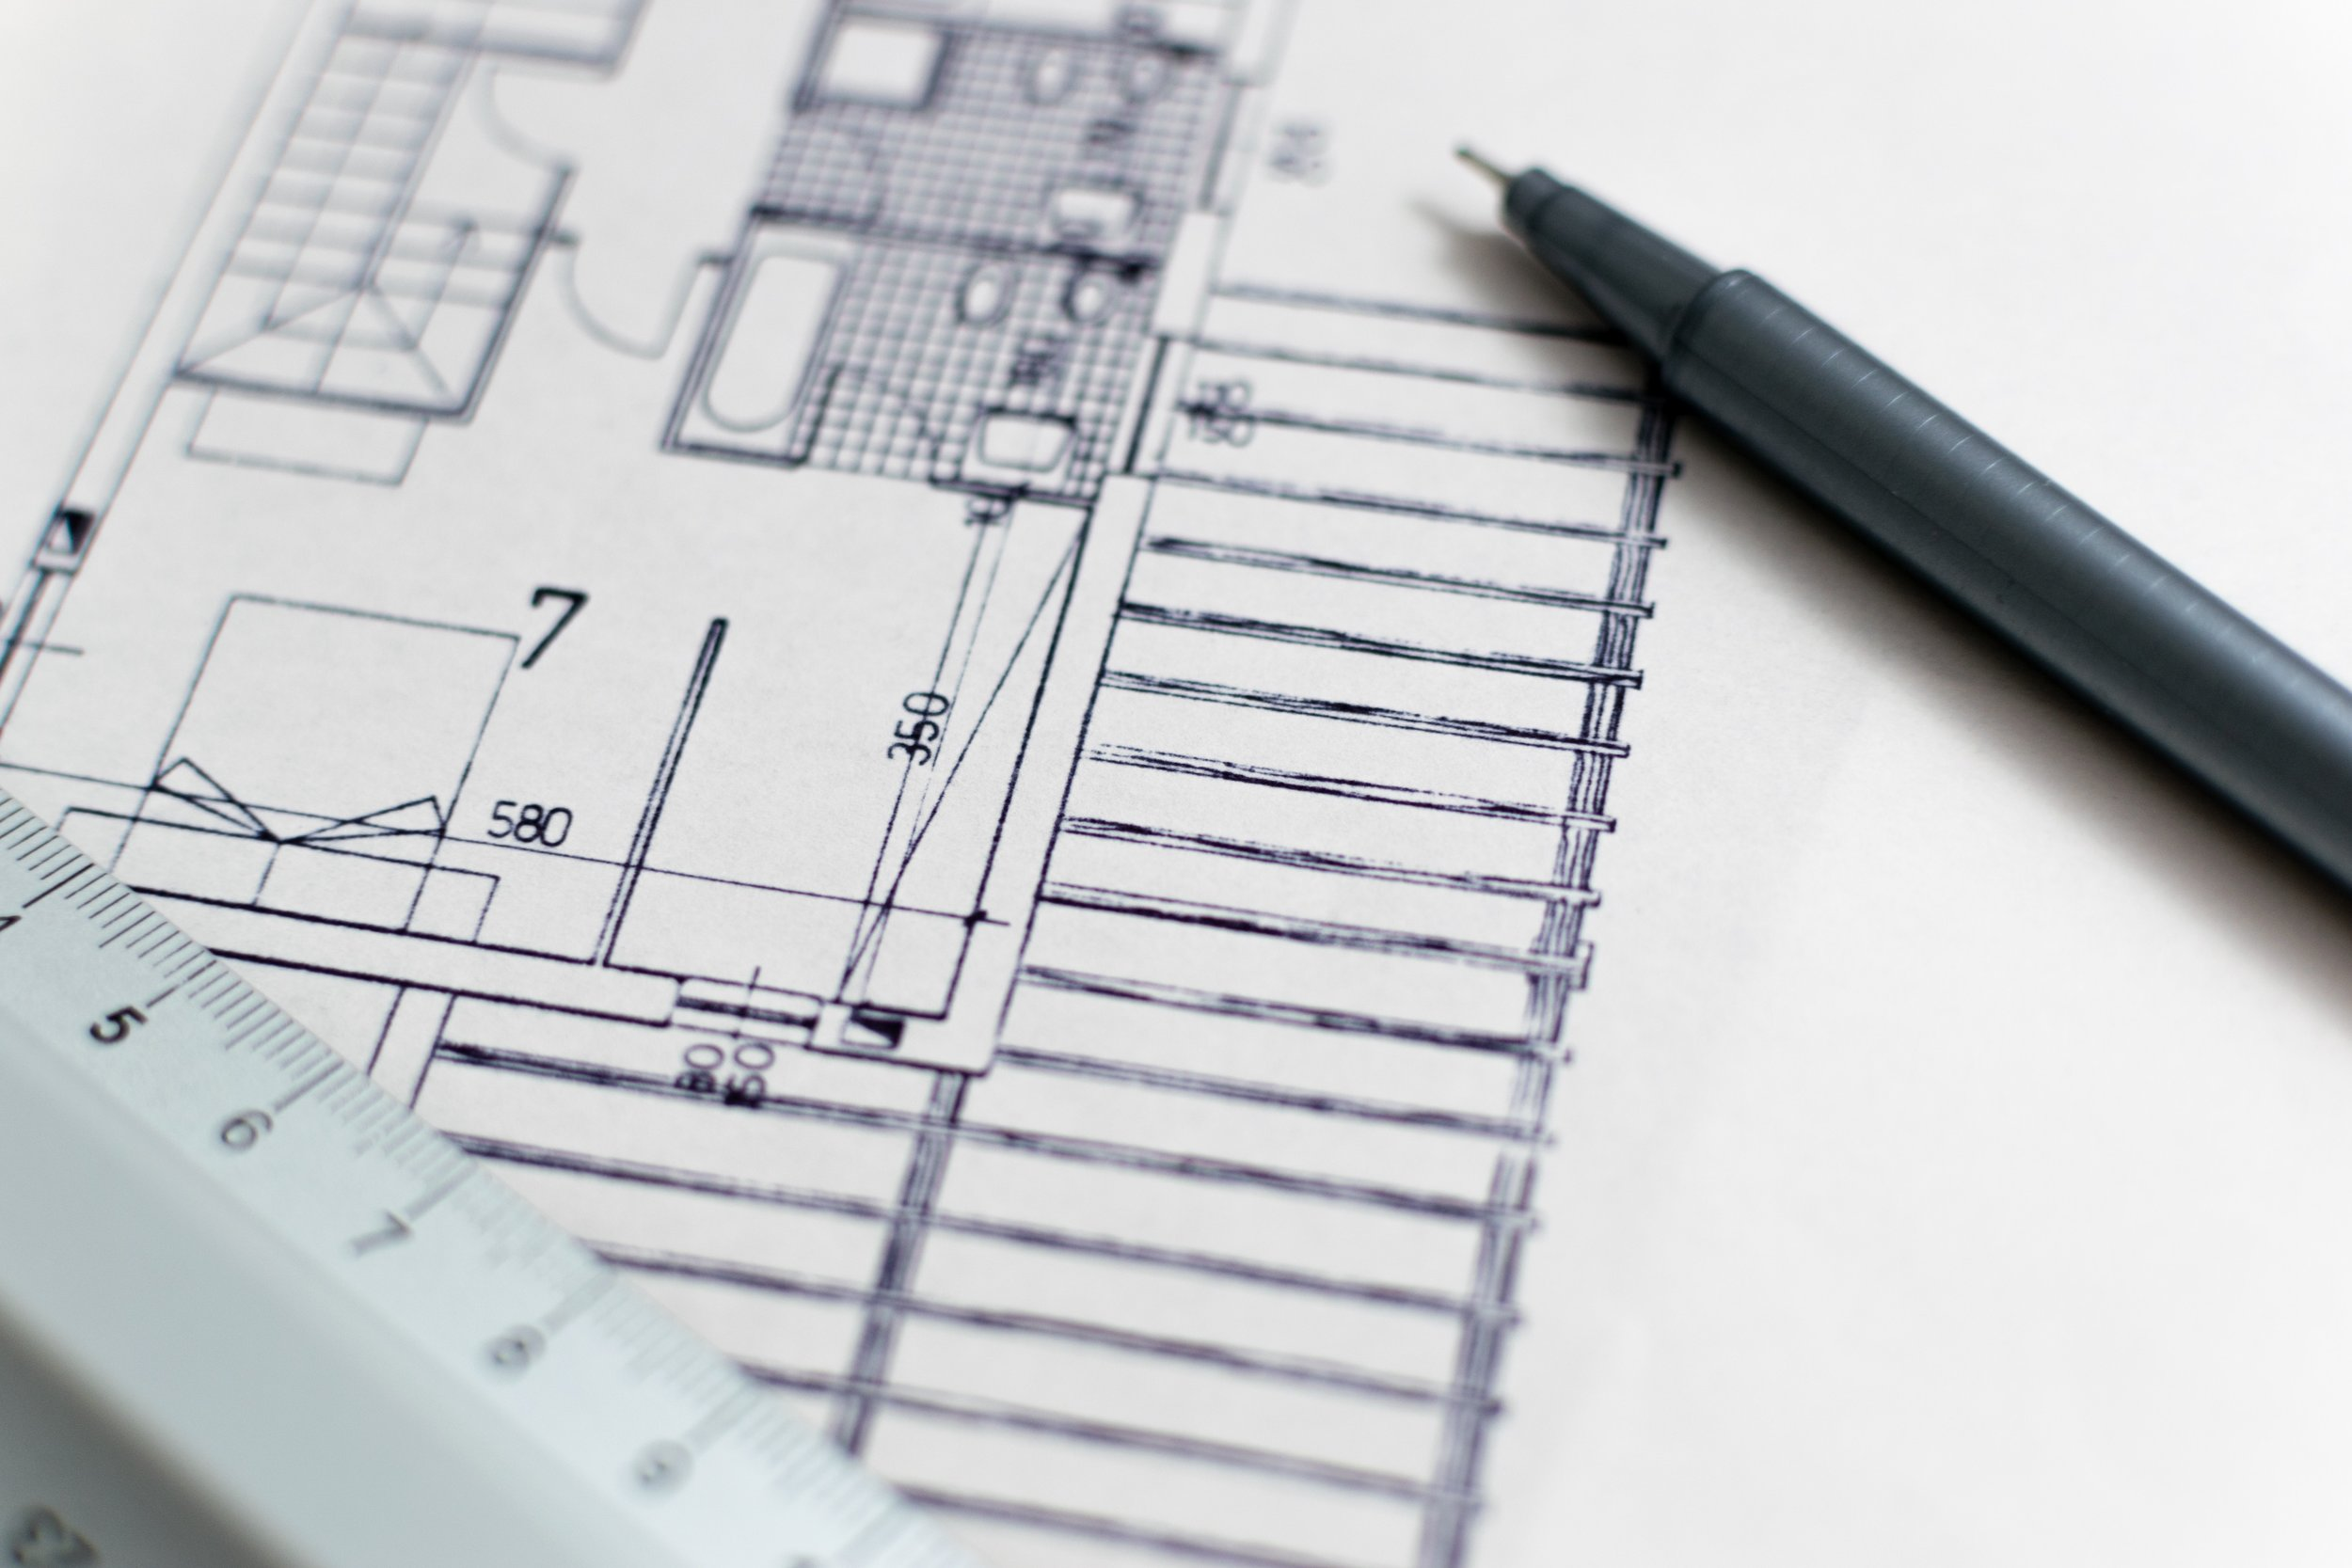 LEASE PLANS - After the Land Registration Act 2002 came into force in October 2003, new and existing leases of 7 years or more must be registered with Land Registry so as to have an up to date compliant plan. We provide quick and high quality lease plans. We work around your schedule and our rates are very competitive.